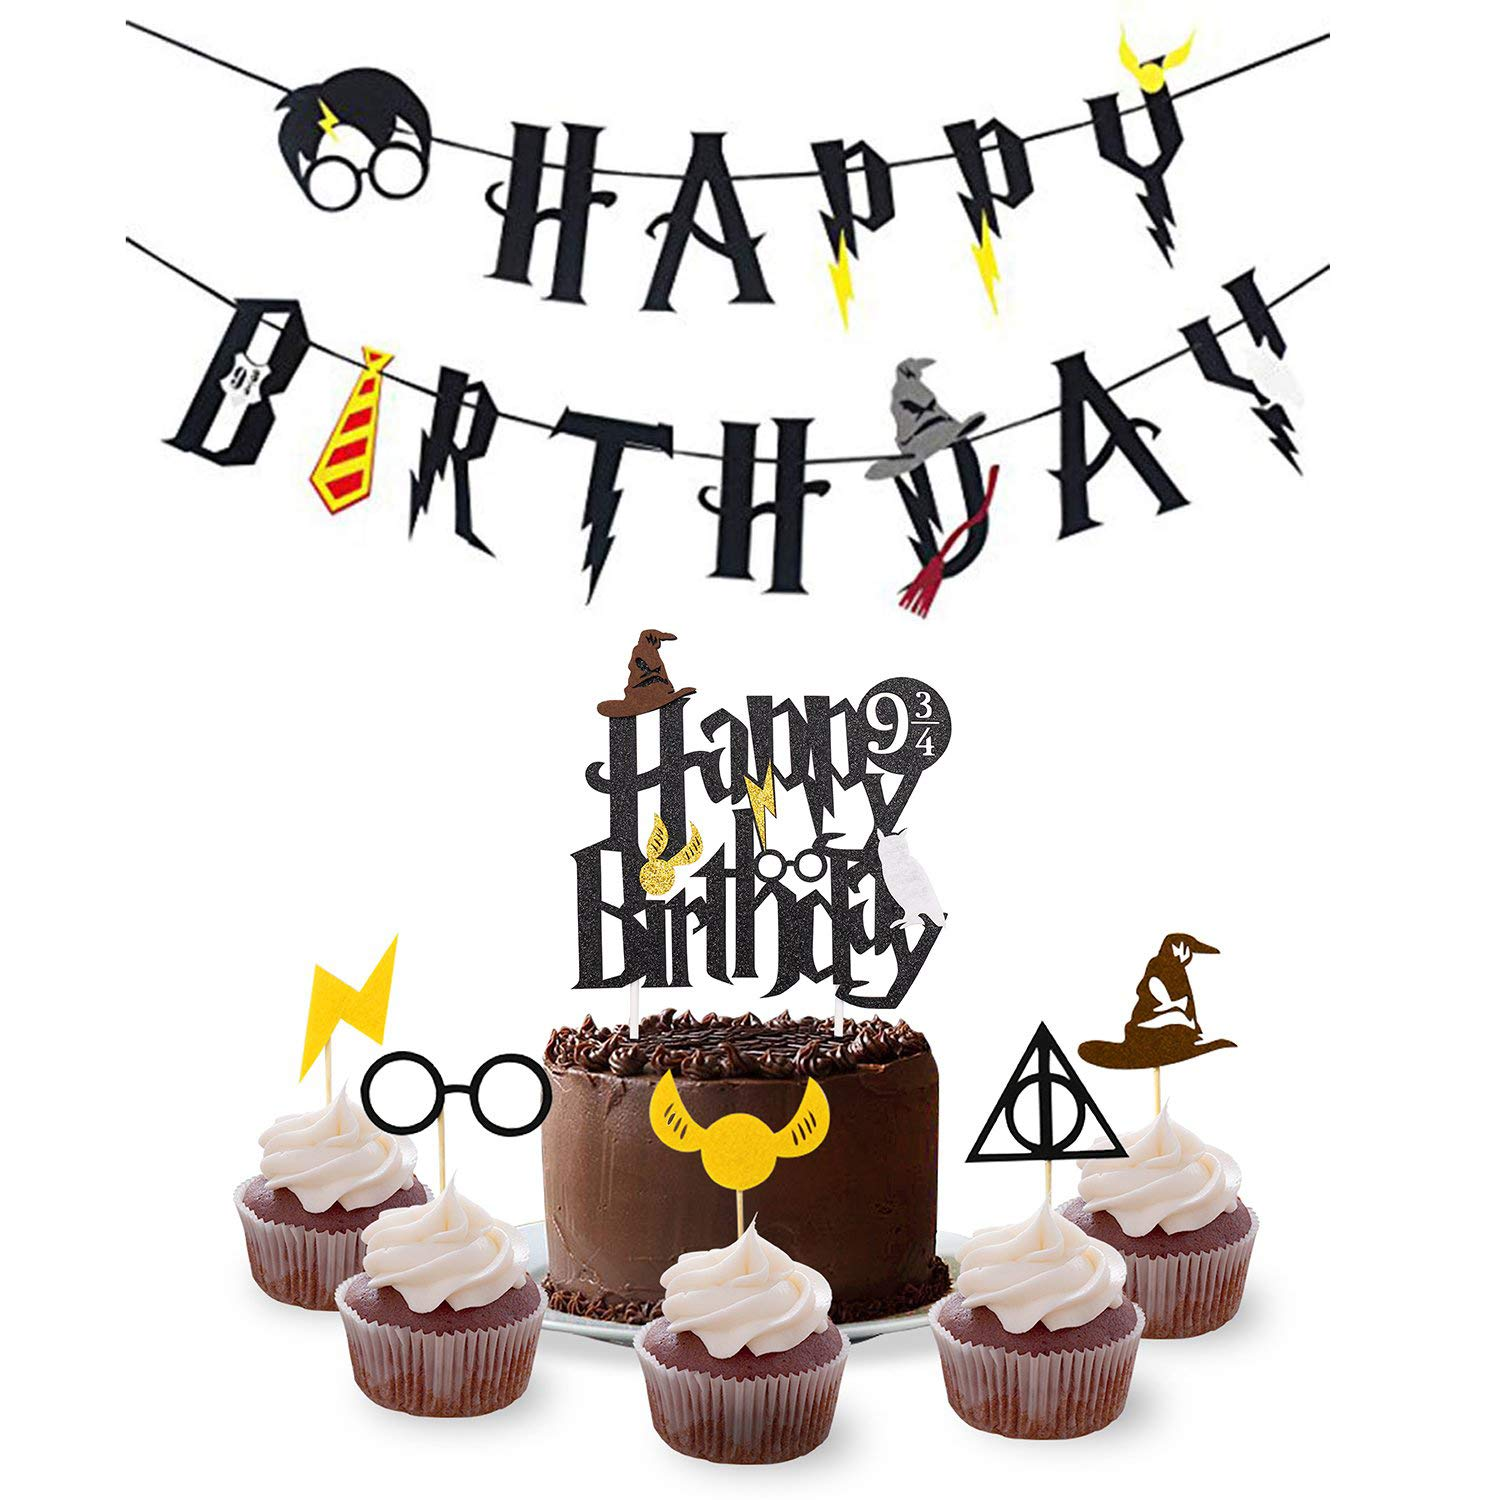 Harry Potter Birthday Party Supplies Set Happy Birthday Banner with Cake Topper,30pcs Cupcake Toppers for Halloween Wizard Theme Party Supplies Decorations